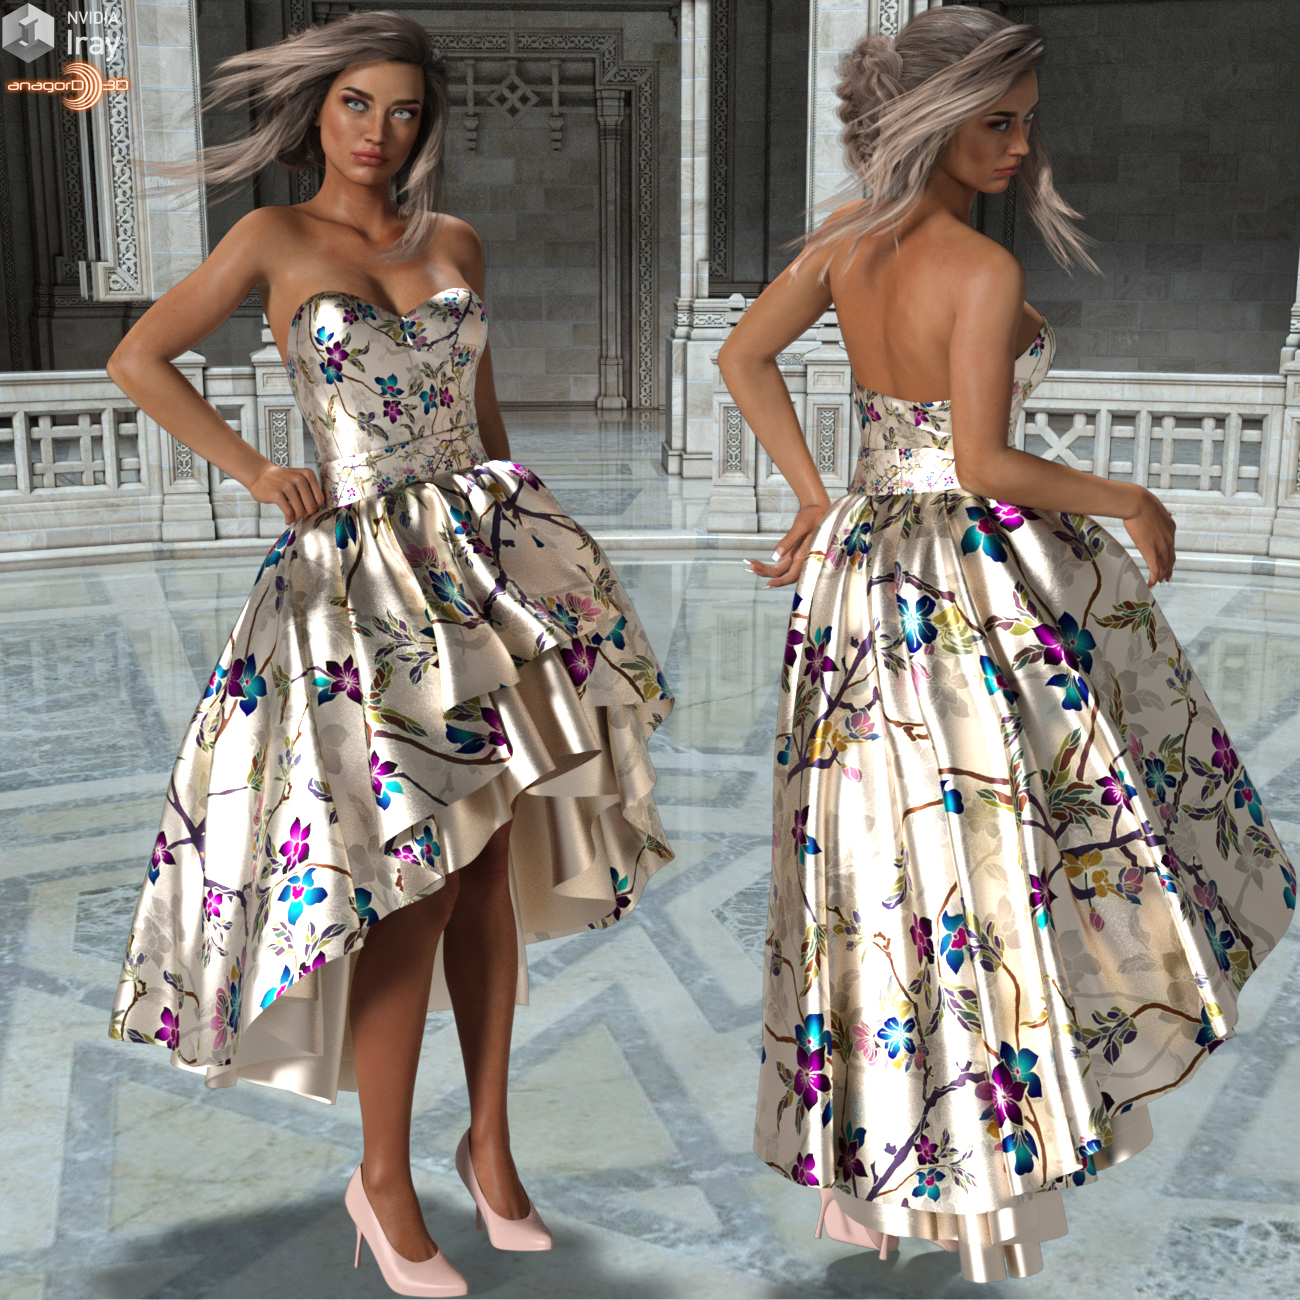 0c16b43cb0e2 VERSUS - Party Gown Outfit for Genesis 3 Female(s) 3D Figure Assets ...